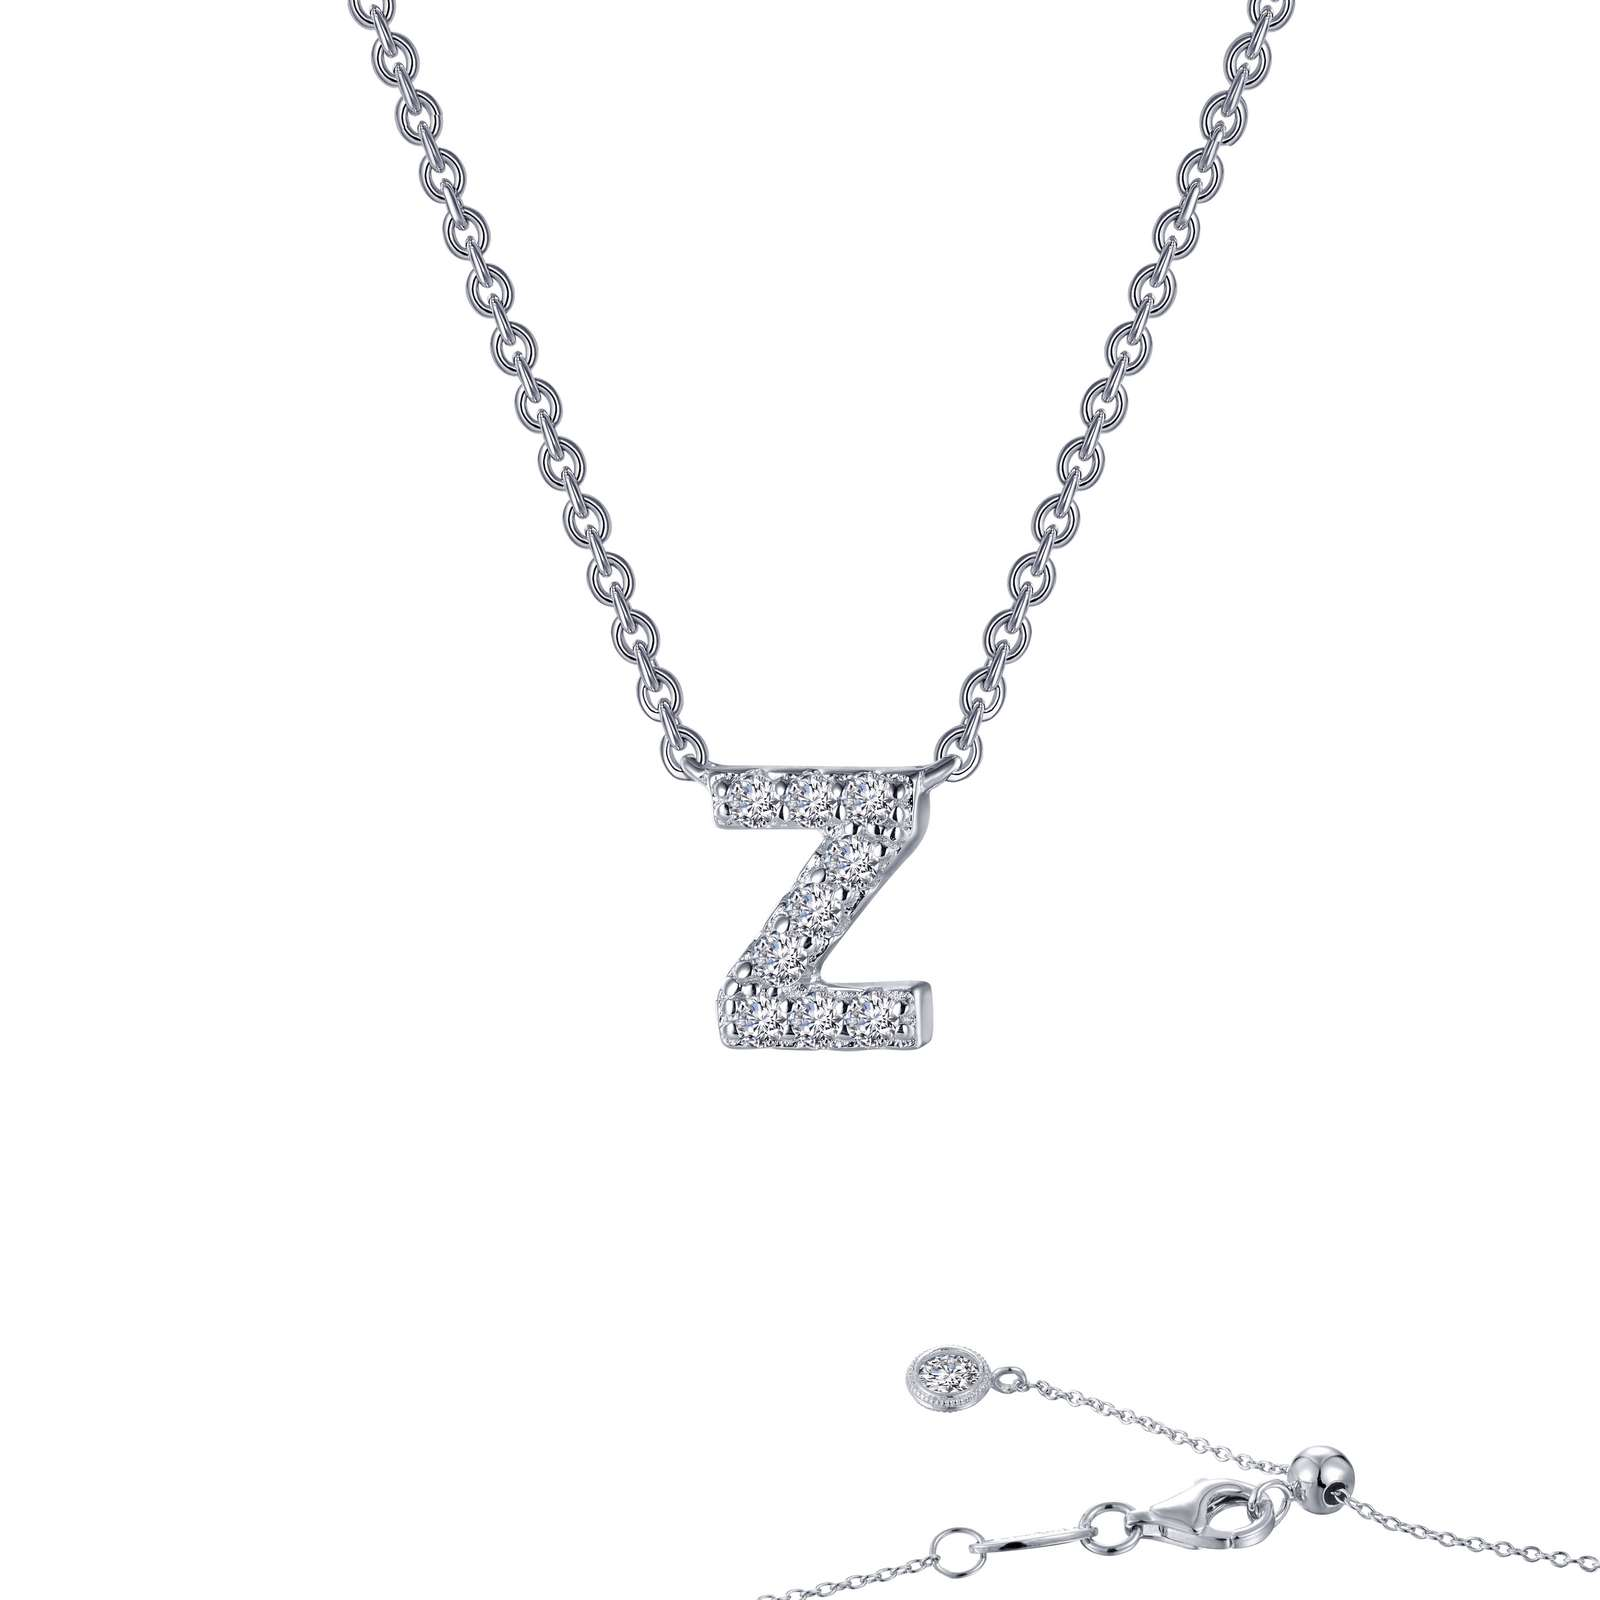 Shop our online store for the best priced pendants. We carry a wide variety of pendants in gold, silver and platinum with or without diamonds and gemstones. See our online store or stop into our showroom in Jensen Beach, Florida.